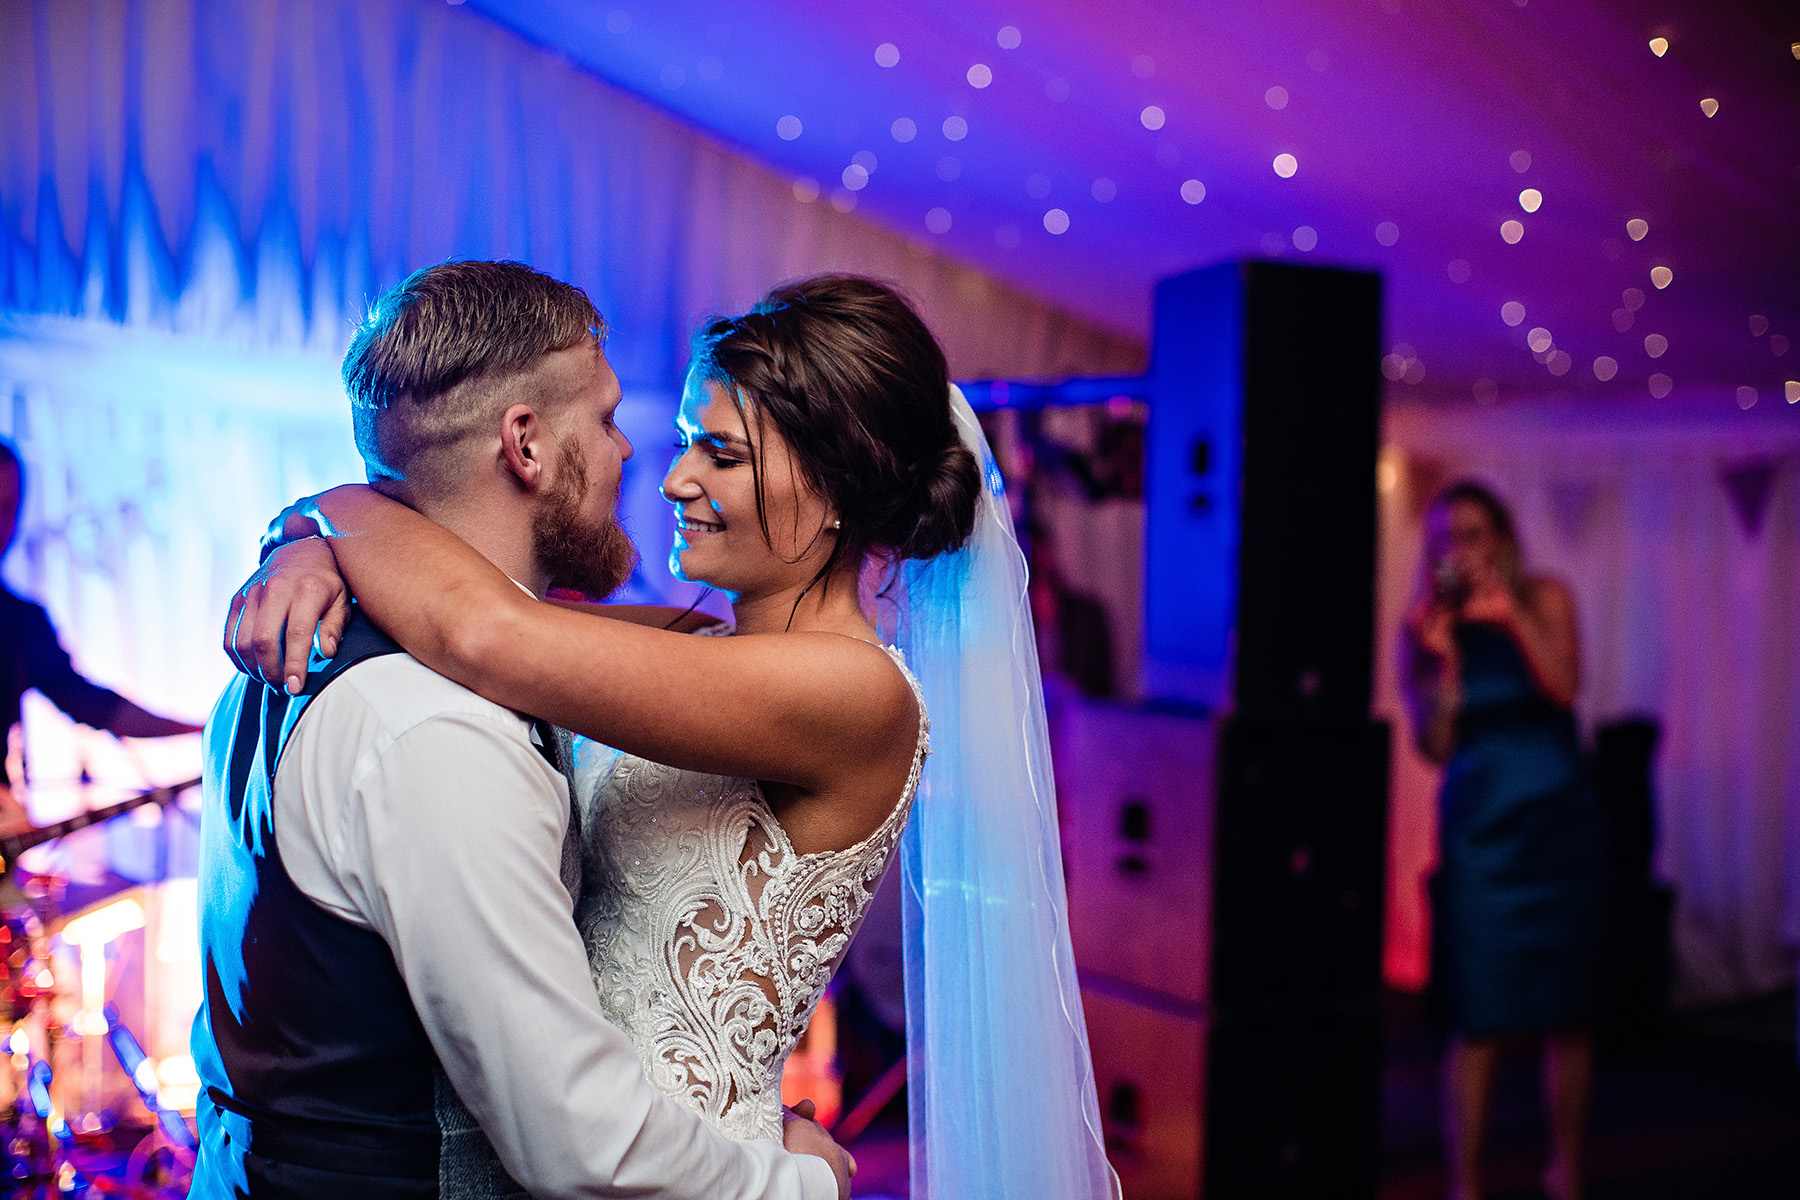 the first dance The Heath House Wedding Photography